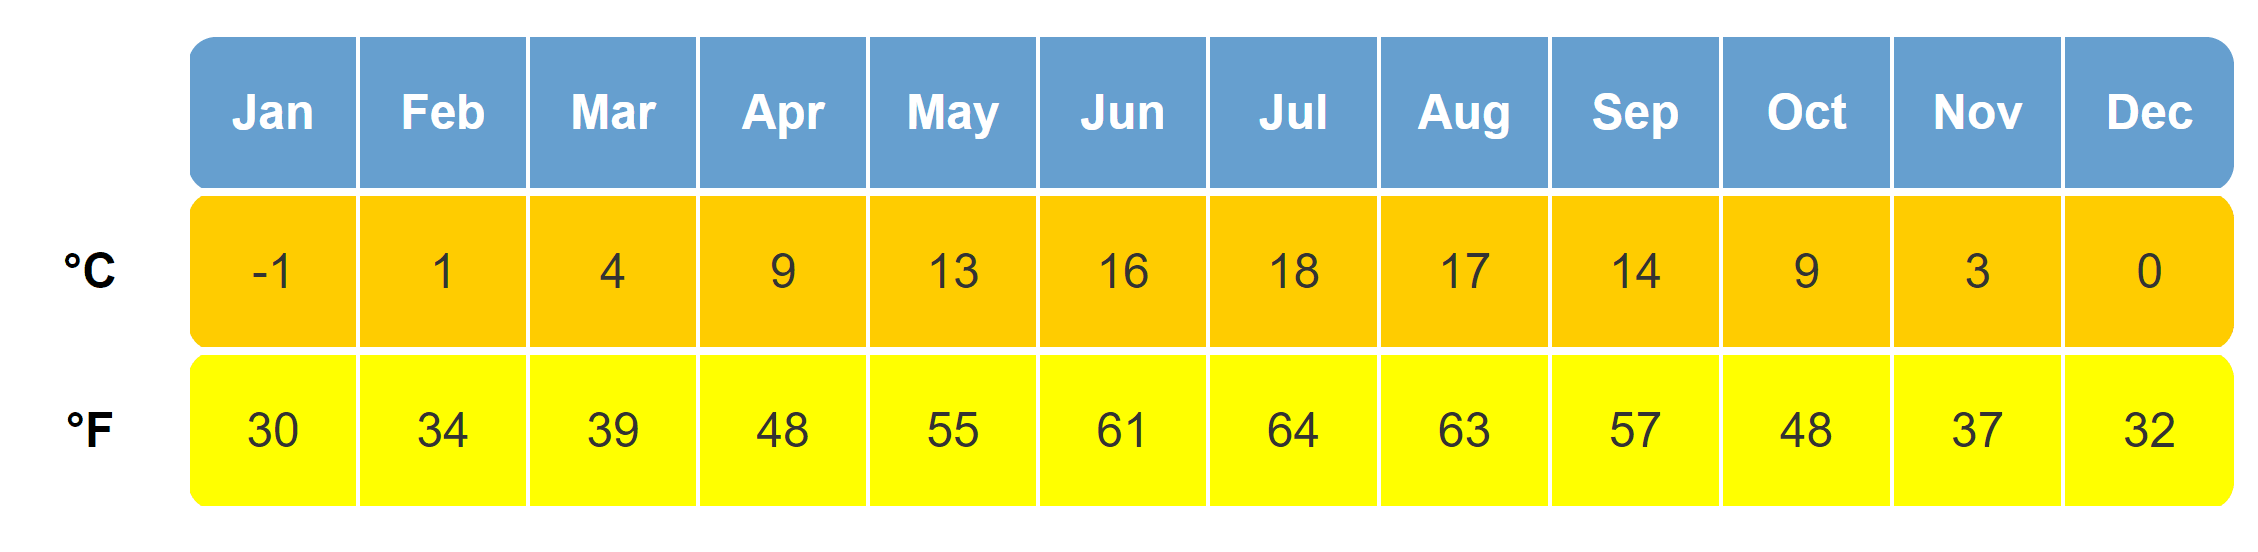 Show Prague monthly weather and temperature averages